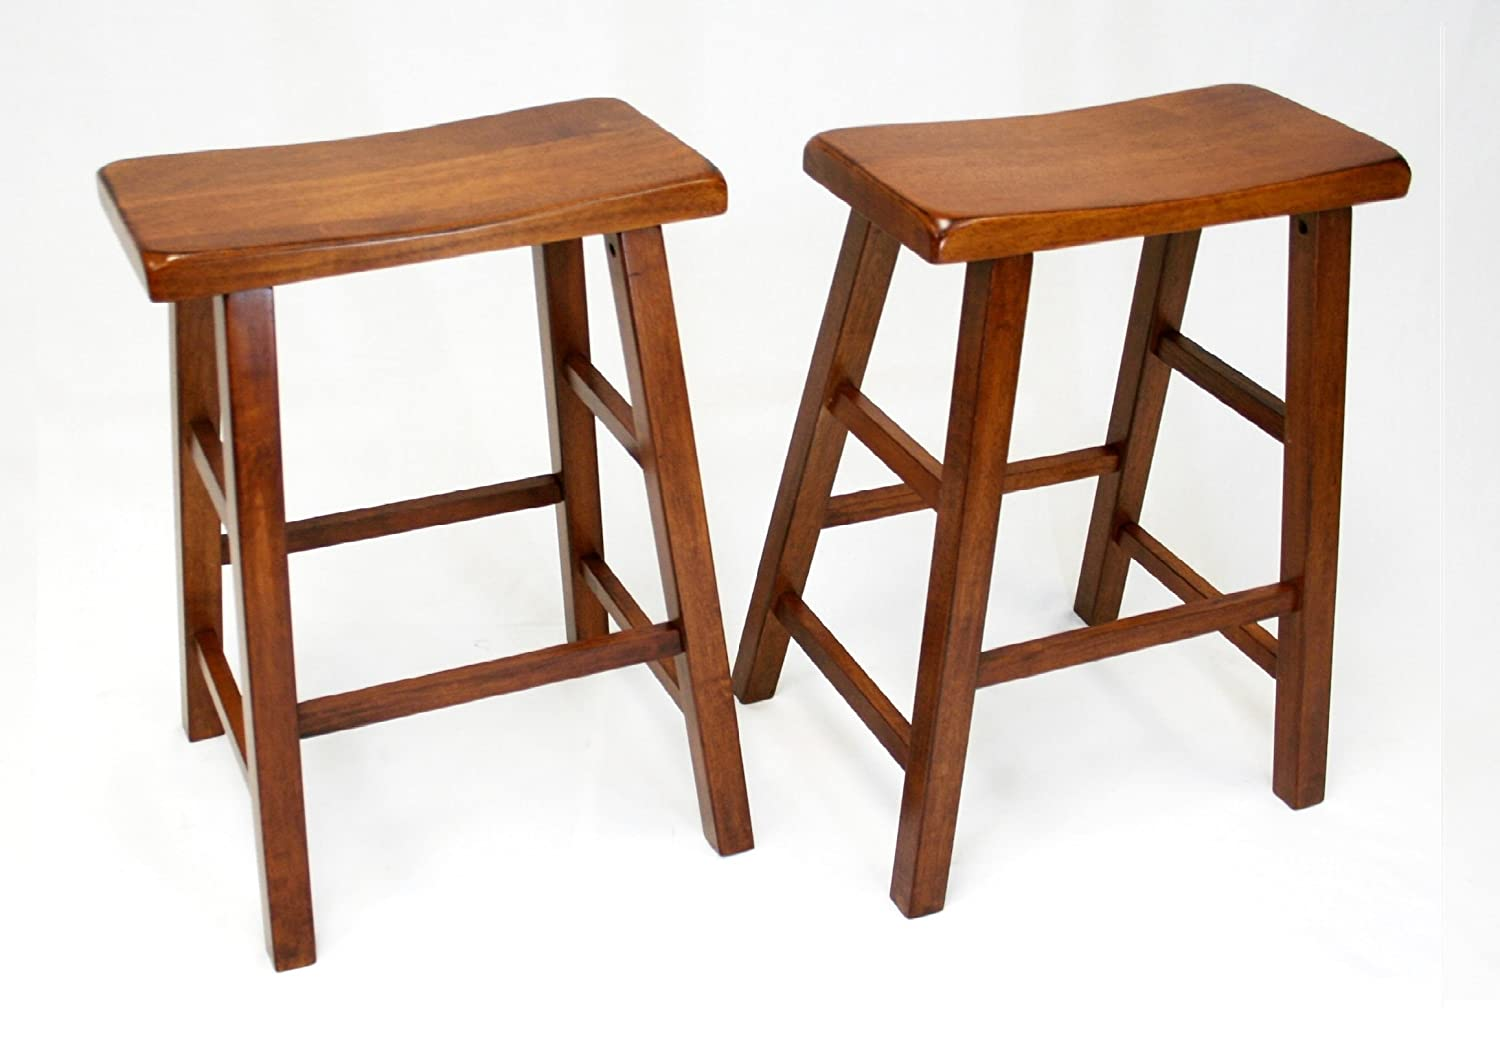 Amazon.com eHemco 24  Heavy Duty Saddle Seat Barstool in Dark Oak Set of 2 Kitchen u0026 Dining  sc 1 st  Amazon.com : bar stool saddle seat - islam-shia.org